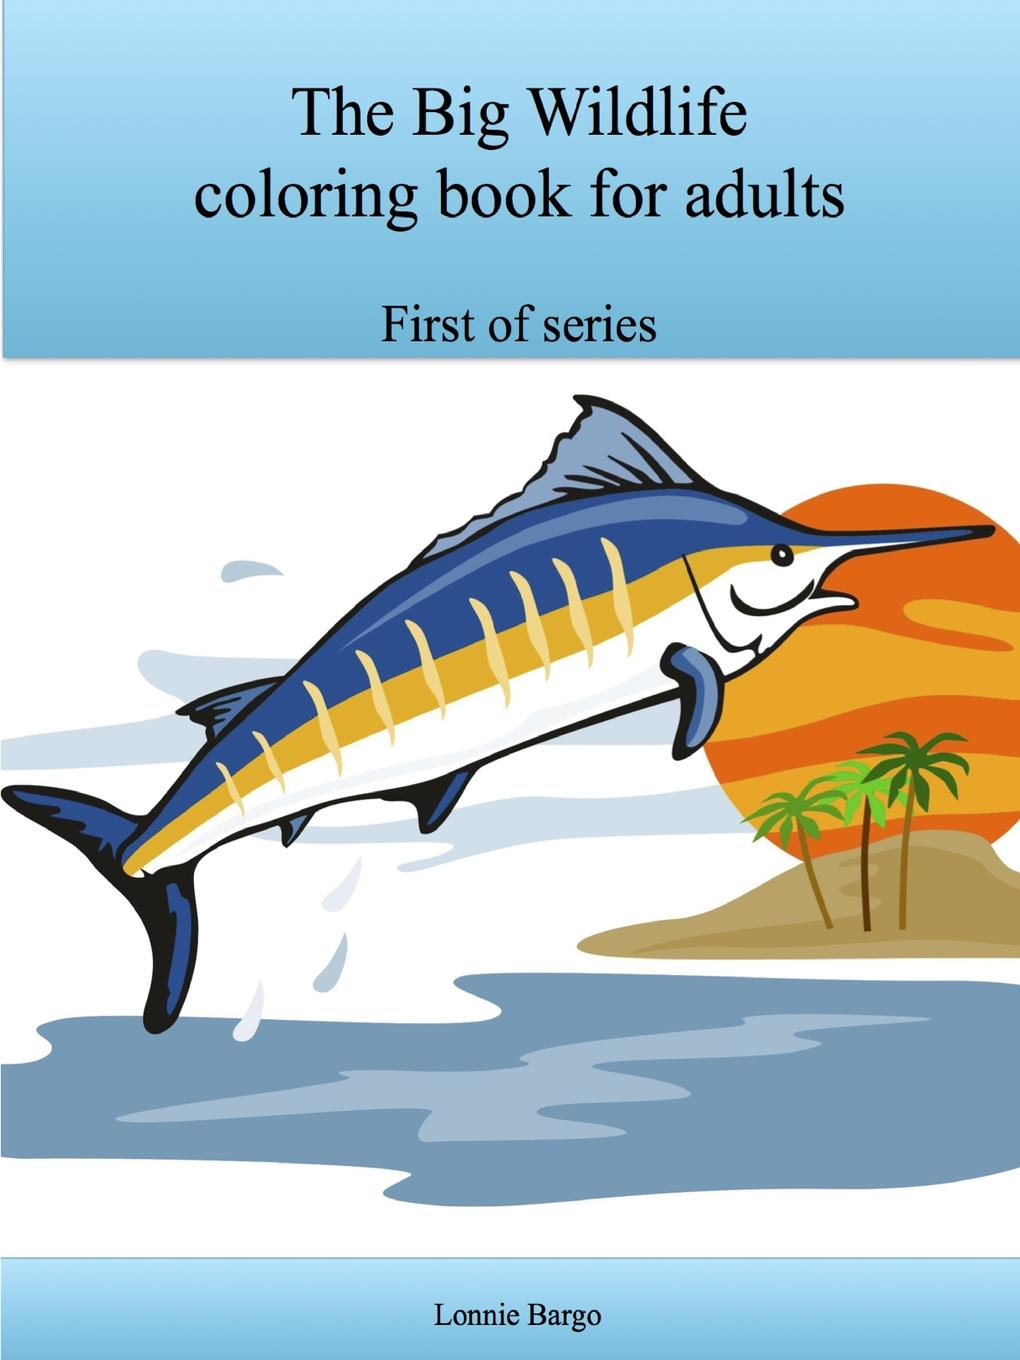 Lonnie Bargo The Big Wildlife coloring book for adults jasmine taylor flower coloring an inspirational coloring book for adults